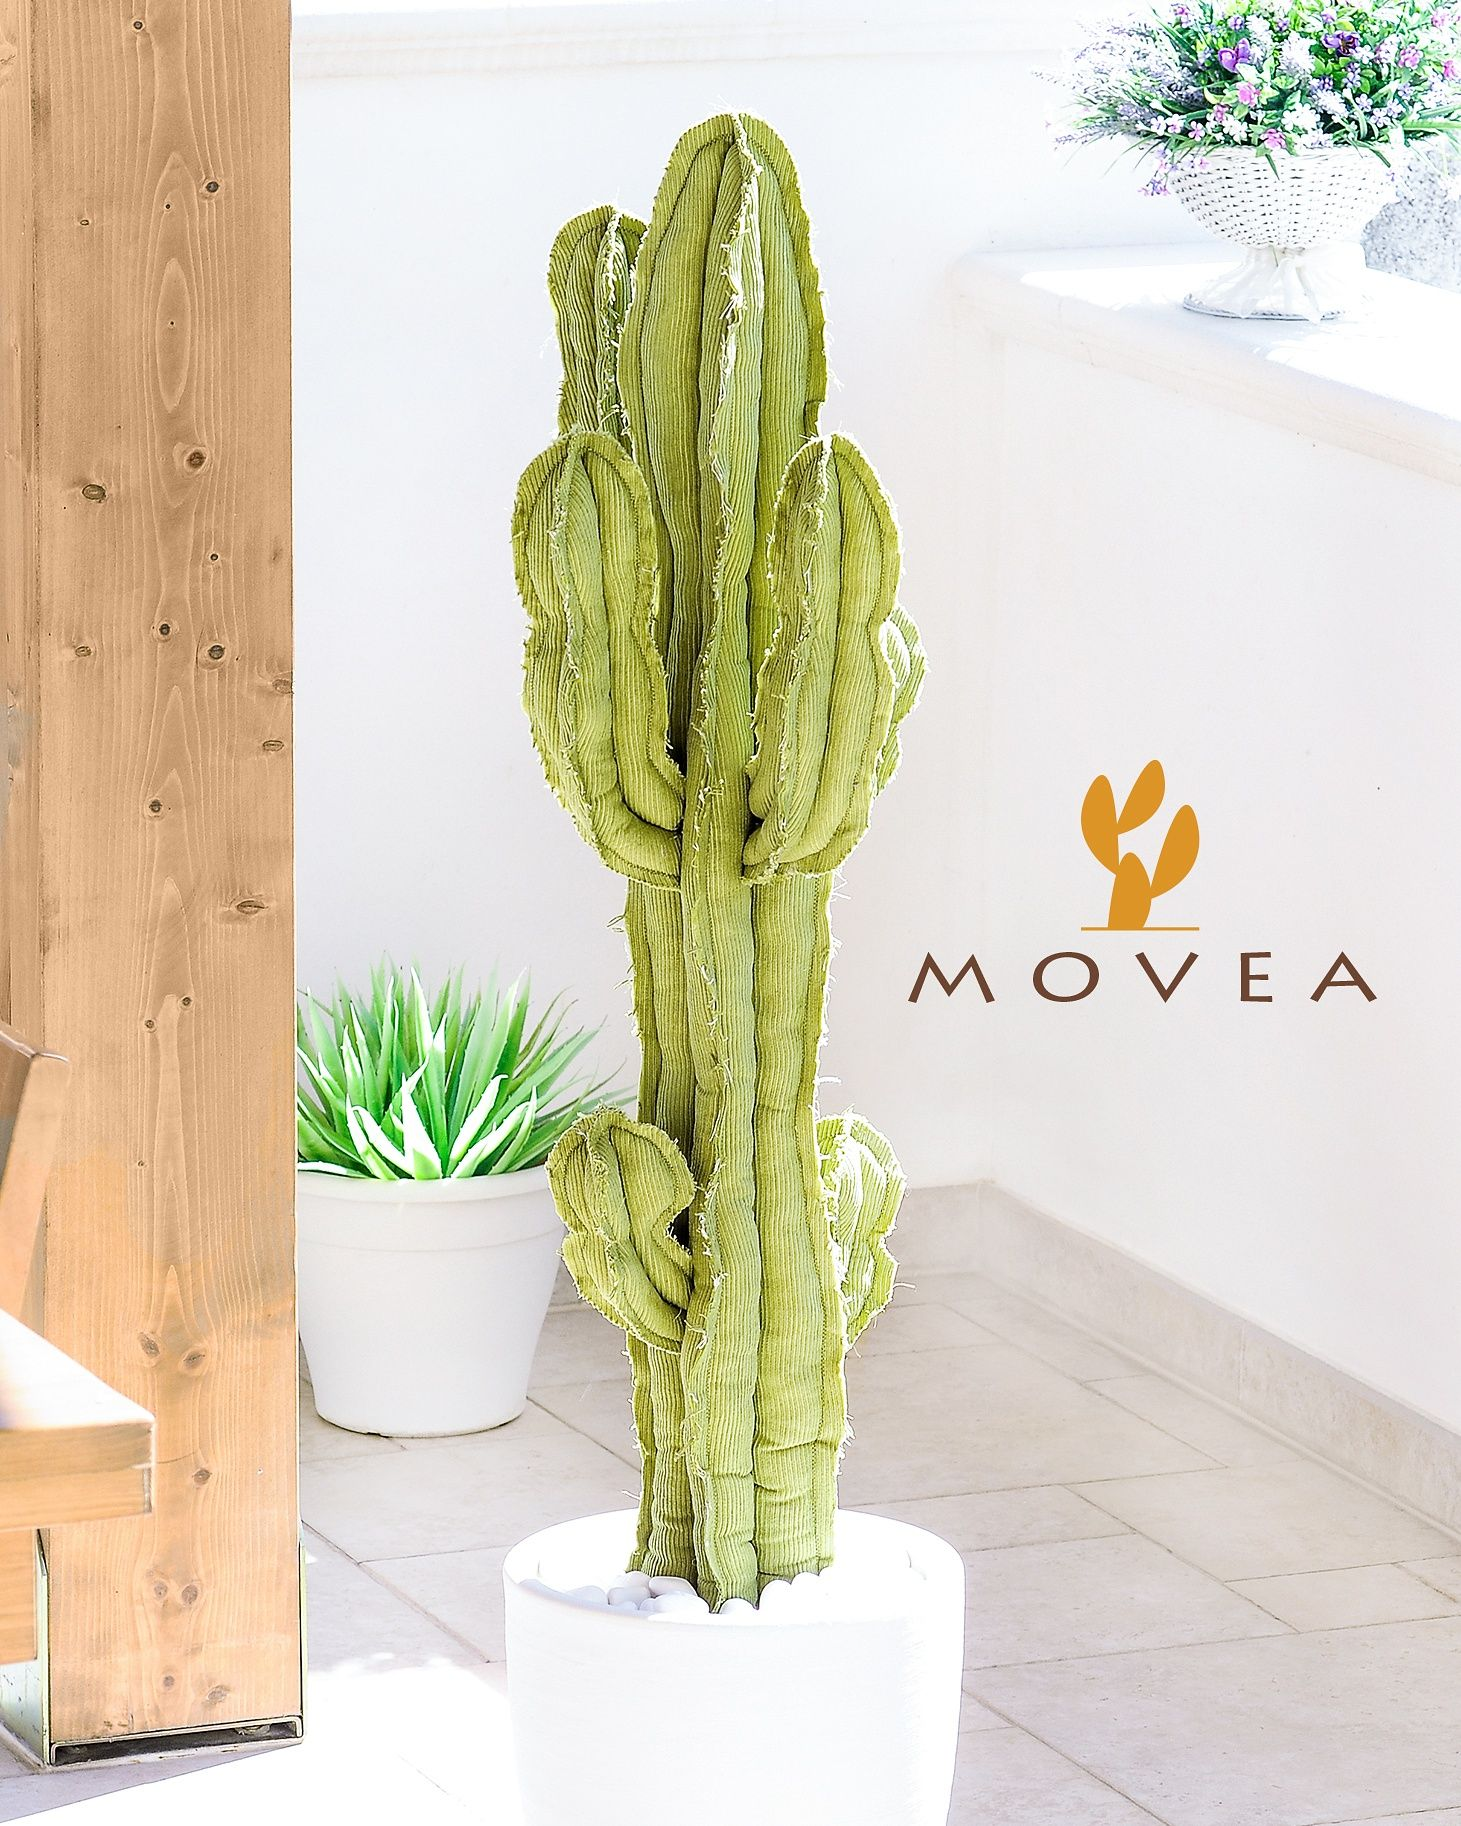 Movea design, artificial plant, arredamento design. | кактусы ...